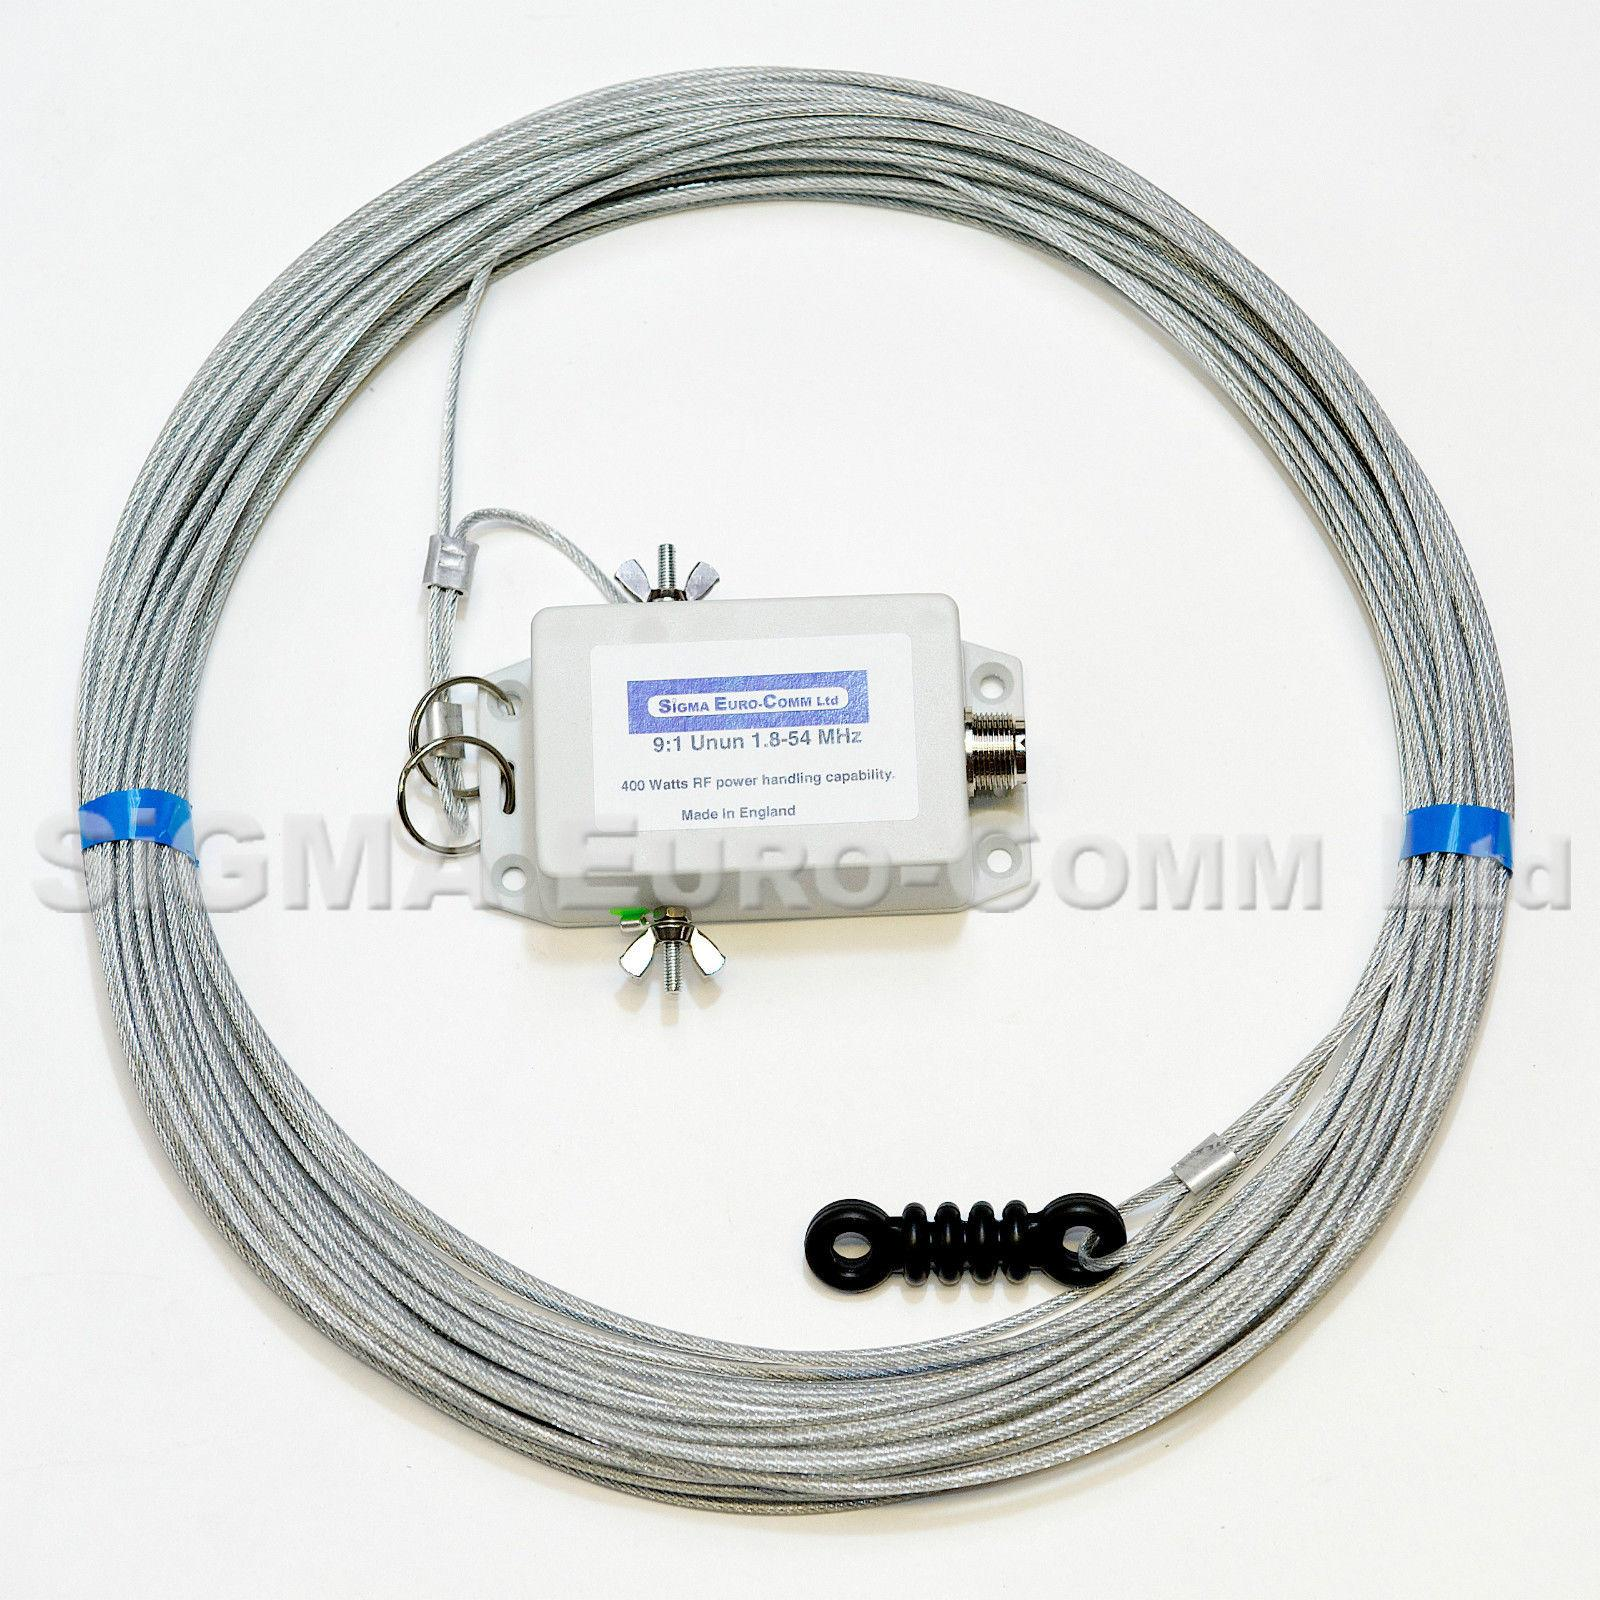 LW-10 HF 40 -6m Multiband Long Wire Antenna / Aerial